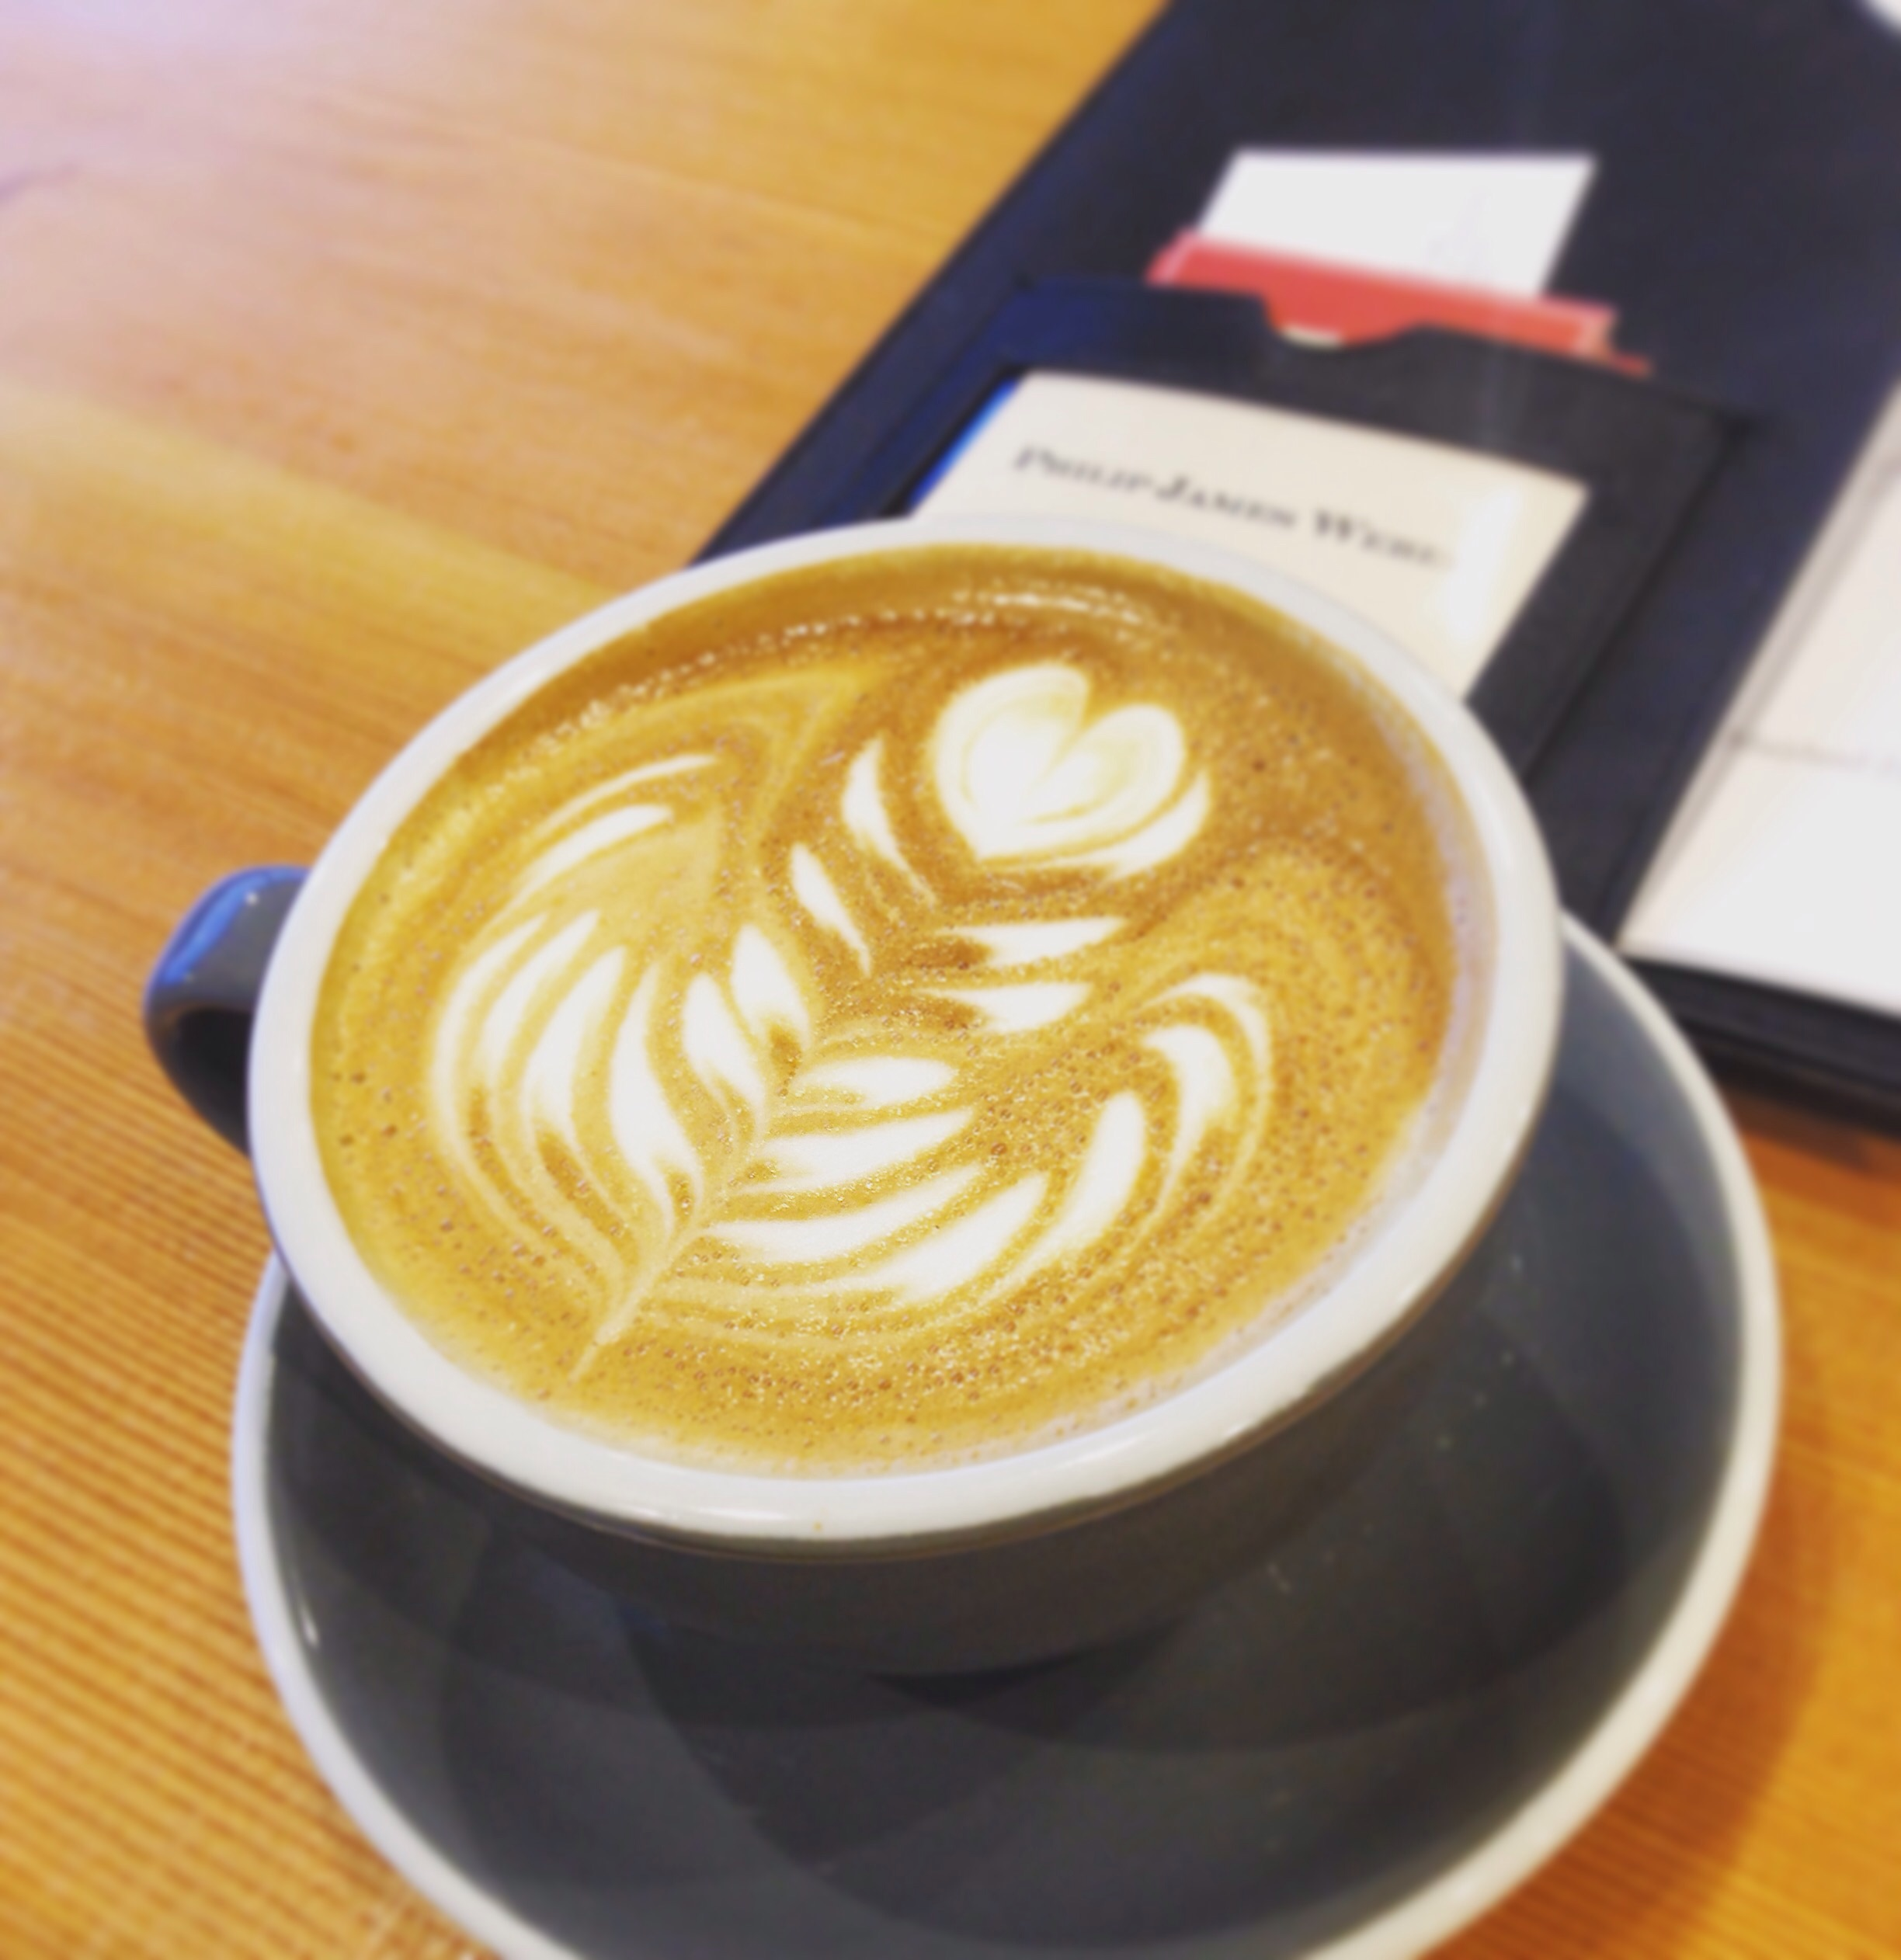 The latté from Ceremony Coffee Roasters